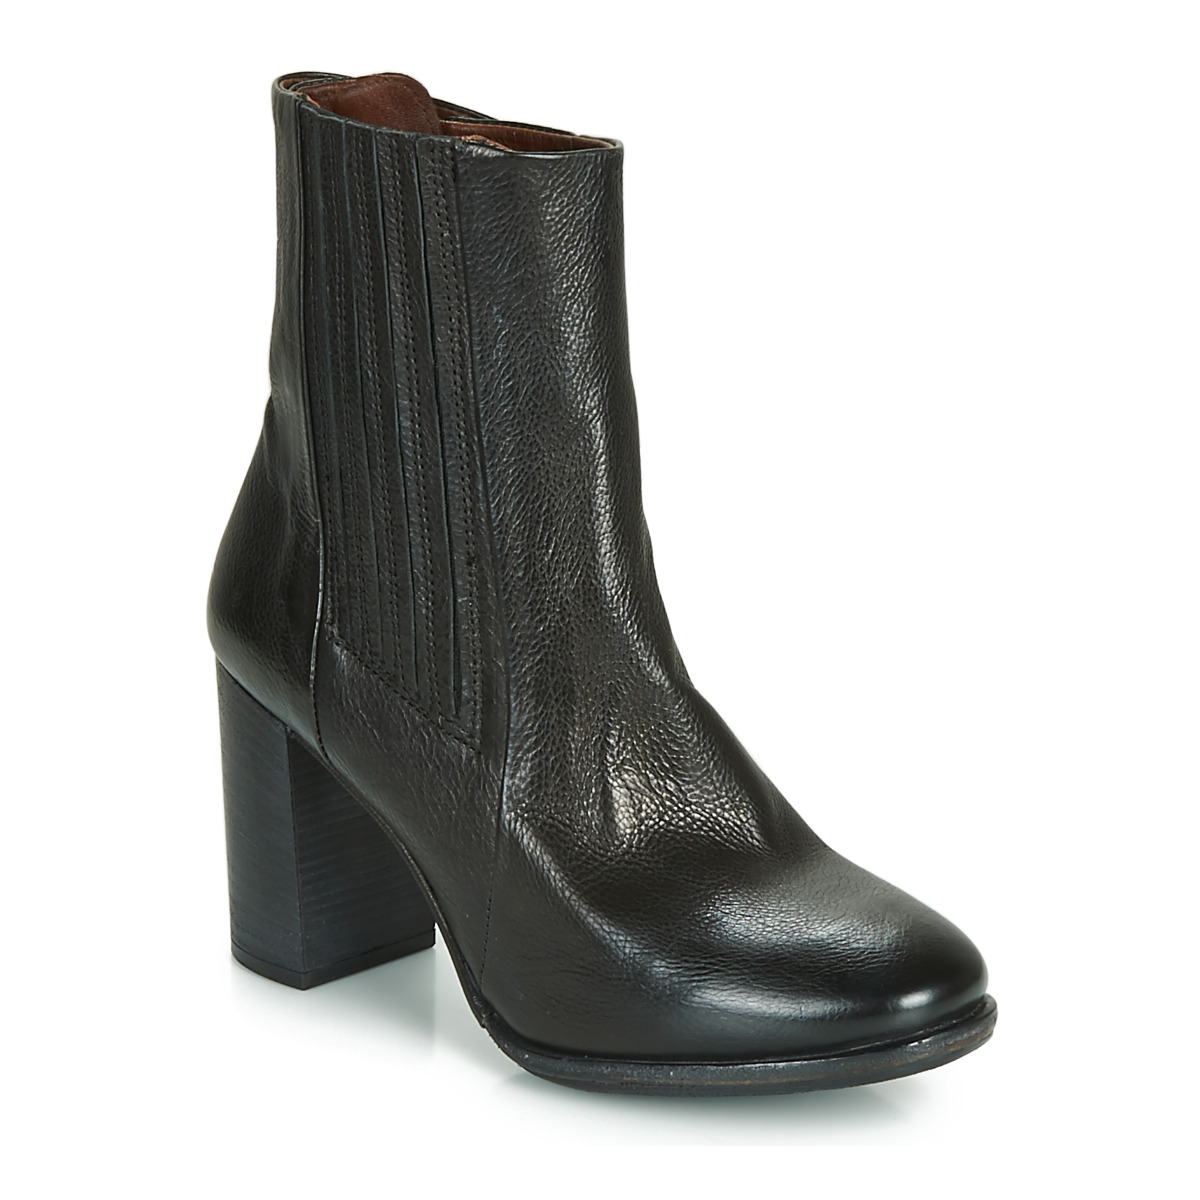 airstep / a.s.98  fresh chels  women's low ankle boots in black